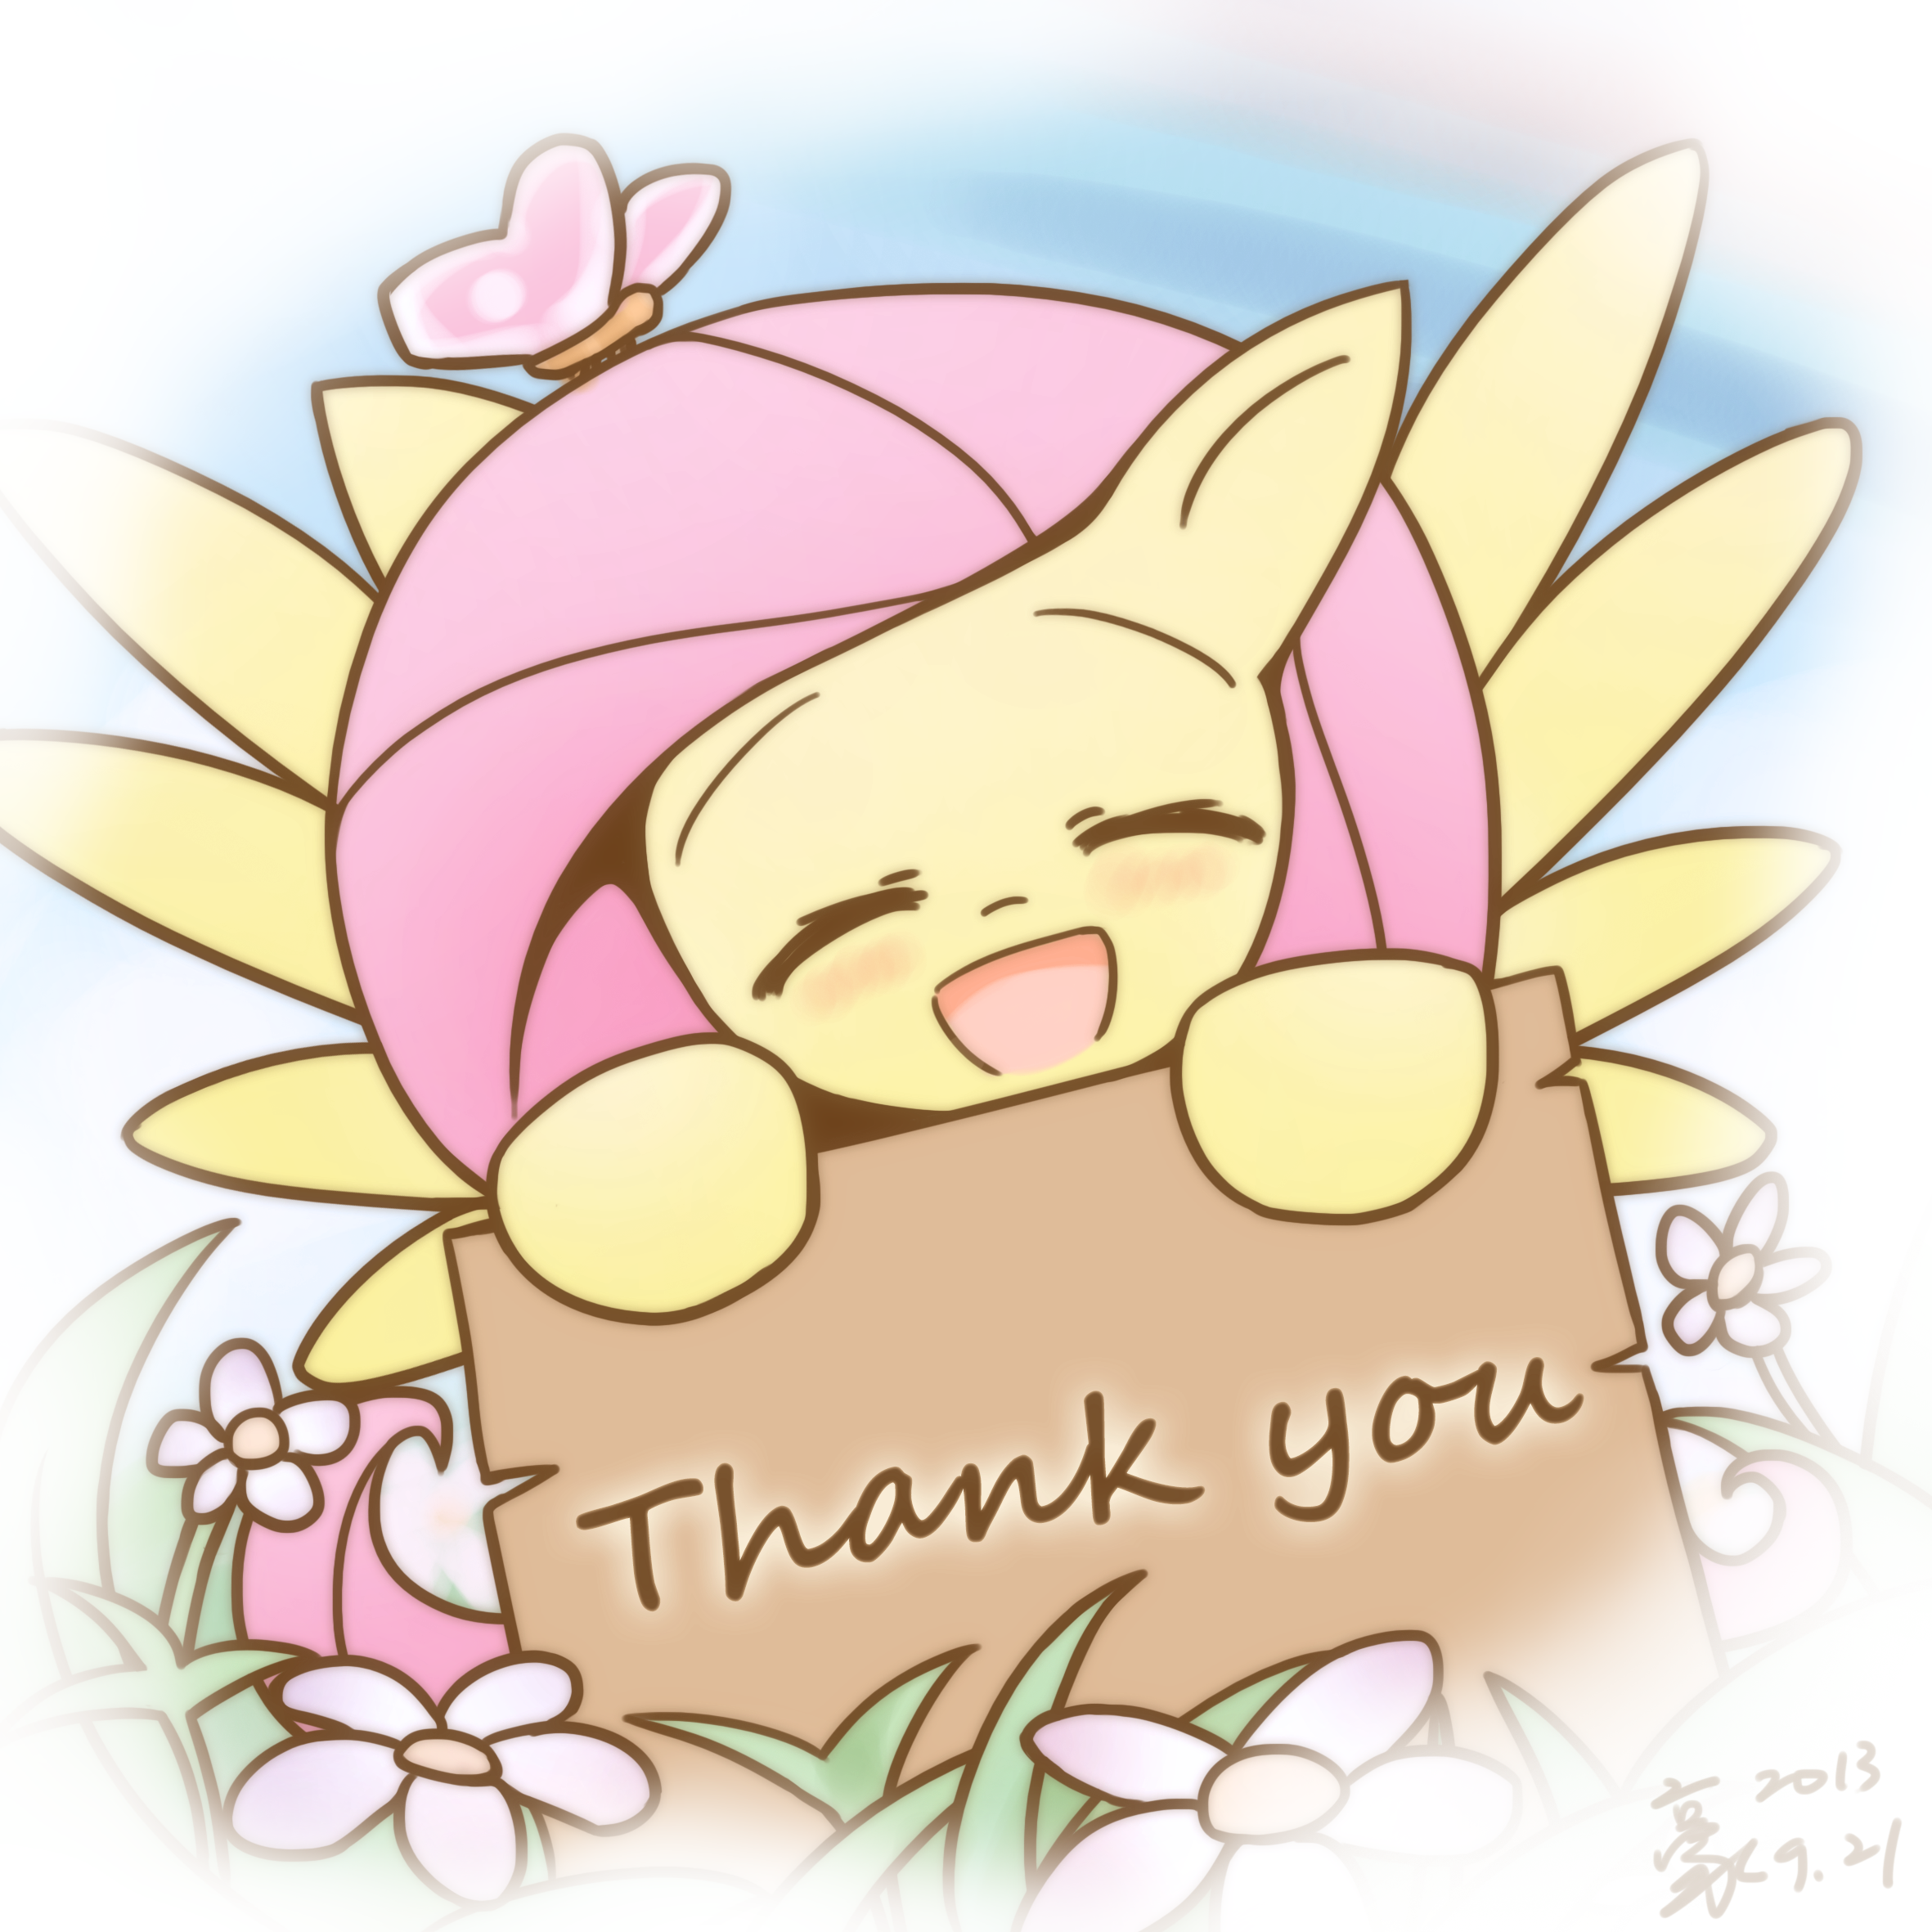 Thankshy by HowXu